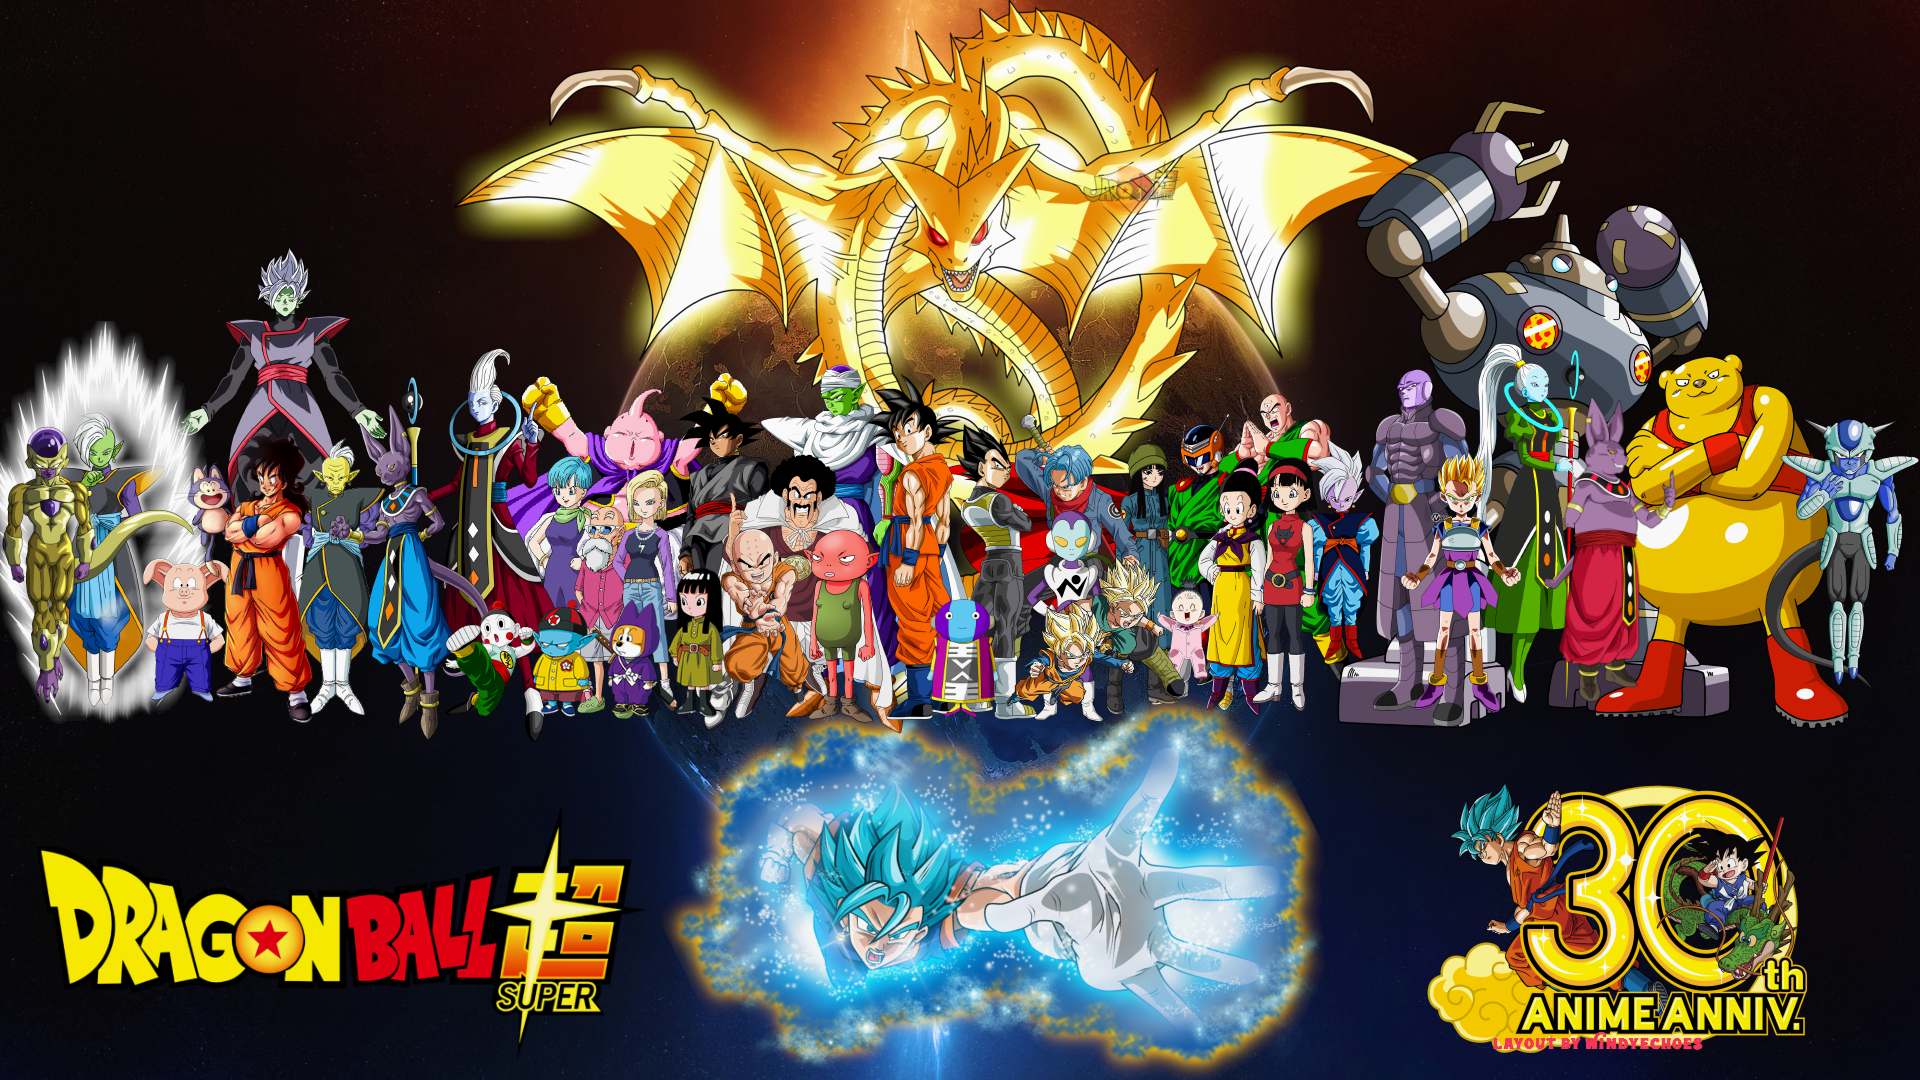 Anime - Dragon Ball Super  Zarama (Dragon Ball) Goku SSGSS Goku Frieza (Dragon Ball) Zamasu (Dragon Ball) Puar (Dragon Ball) Yamcha (Dragon Ball) Gowasu (Dragon Ball) Beerus (Dragon Ball) Whis (Dragon Ball) Chiaotzu (Dragon Ball) Pilaf (Dragon Ball) Shu (Dragon Ball) Bulma (Dragon Ball) Master Roshi (Dragon Ball) Android 18 (Dragon Ball) Mai (Dragon Ball) Majin Buu Krillin (Dragon Ball) Black (Dragon Ball) Black Goku Hercule (Dragon Ball) Piccolo (Dragon Ball) Monaka (Dragon Ball) Zeno (Dragon Ball) Vegeta (Dragon Ball) Jaco Teirimentenpibosshi Goten (Dragon Ball) Trunks (Dragon Ball) Pan (Dragon Ball) Chi-Chi (Dragon Ball) Videl (Dragon Ball) Great Saiyaman (Dragon Ball) Tien Shinhan (Dragon Ball) Supreme Kai (Dragon Ball) Hit (Dragon Ball) Kyabe (Dragon Ball) Vados (Dragon Ball) Magetta (Dragon Ball) Botamo (Dragon Ball) Champa (Dragon Ball) Frost (Dragon Ball) Vegito (Dragon Ball) SSGSS Vegito Wallpaper